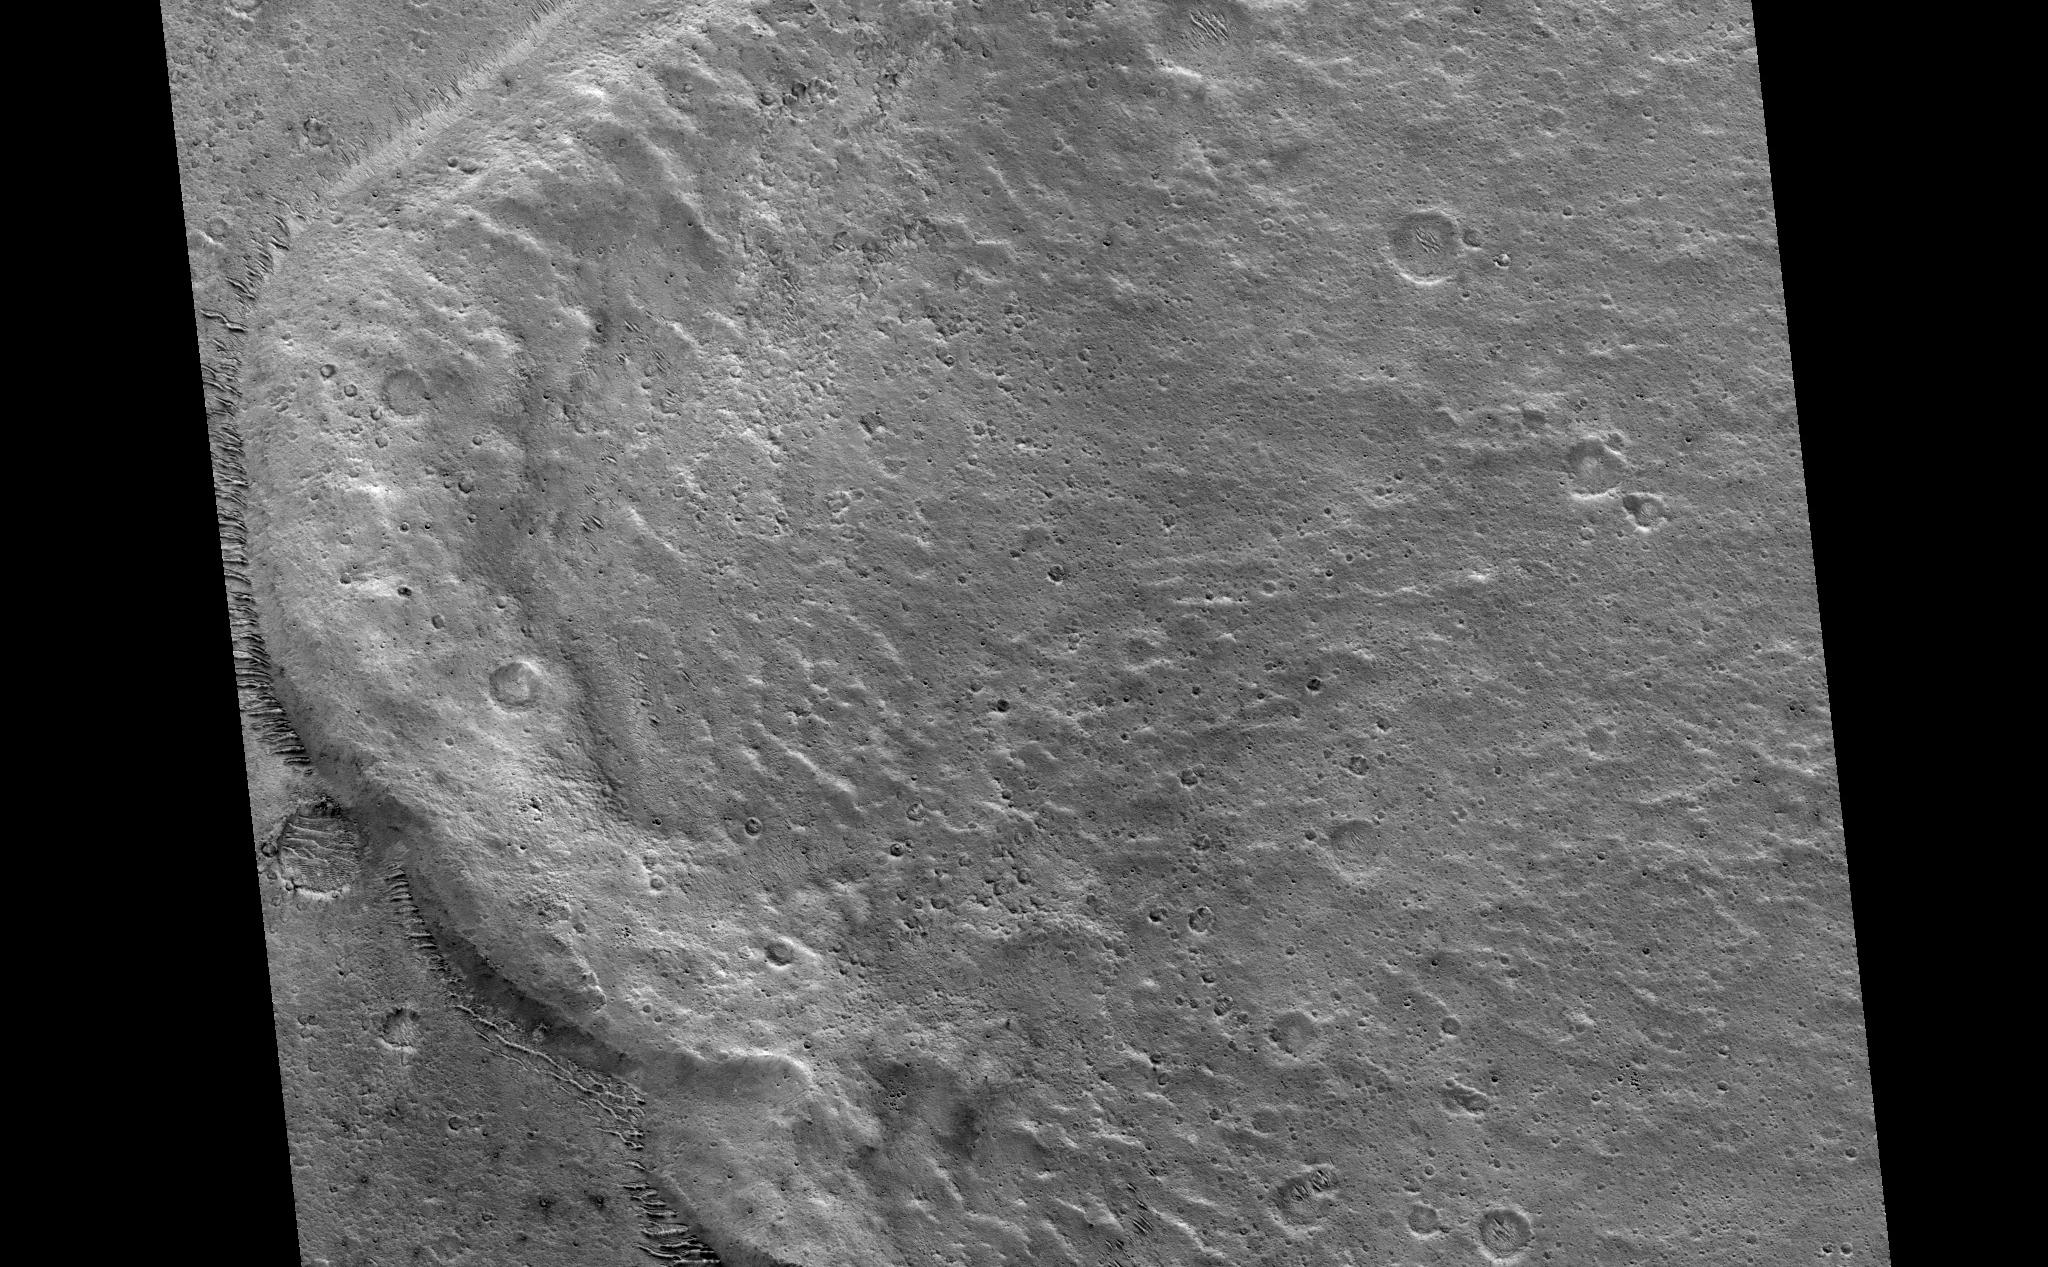 Distal Rampart of Crater in Chryse Planitia – NASA's Mars